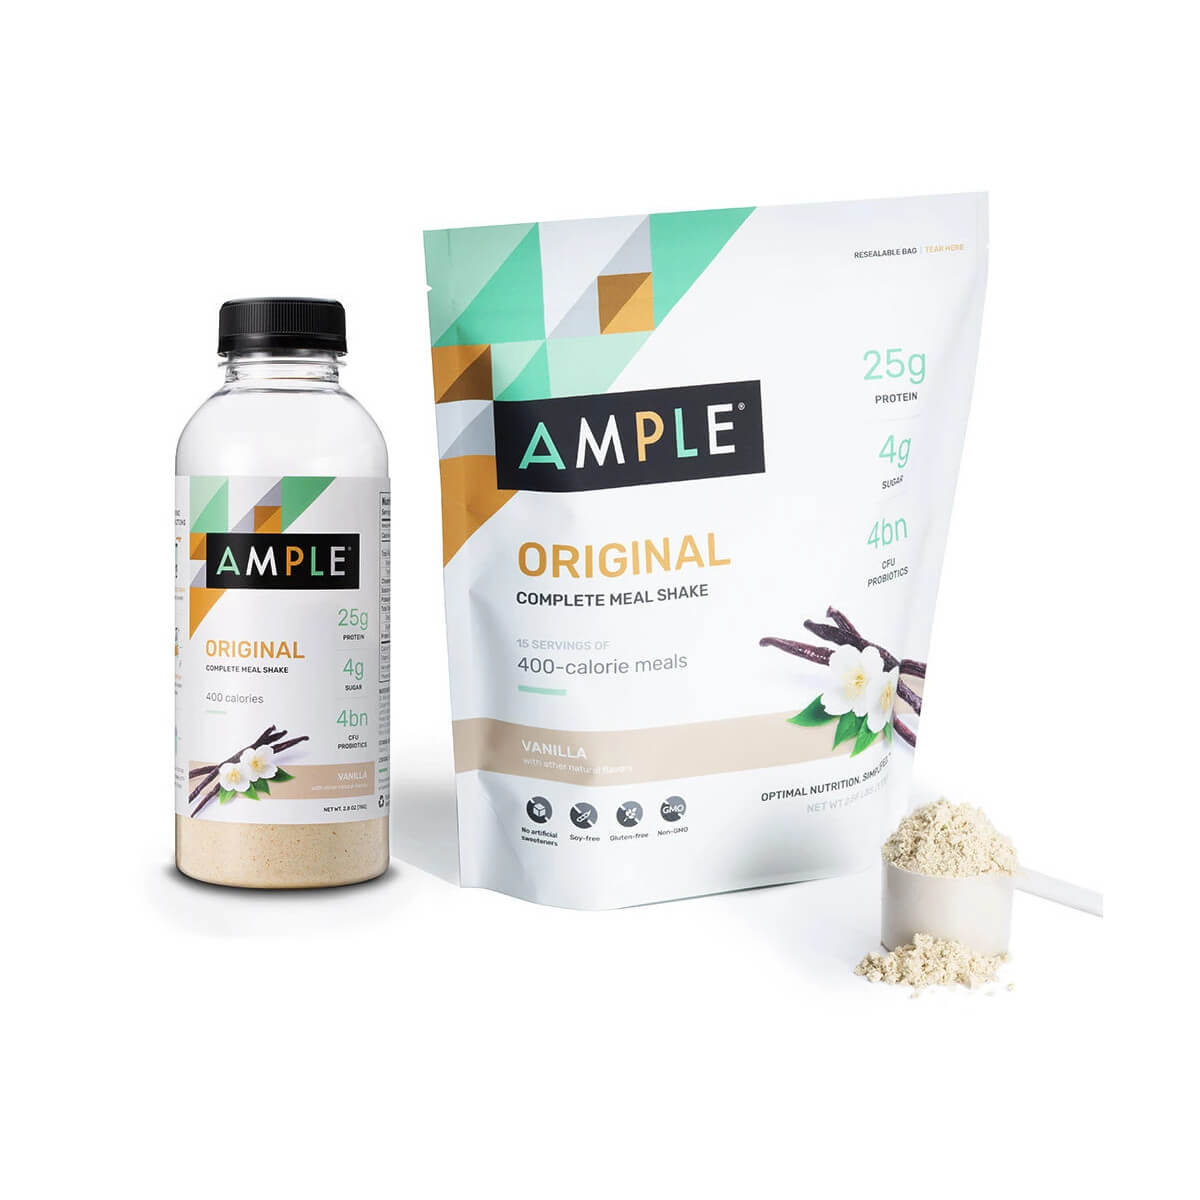 Ample Original product image